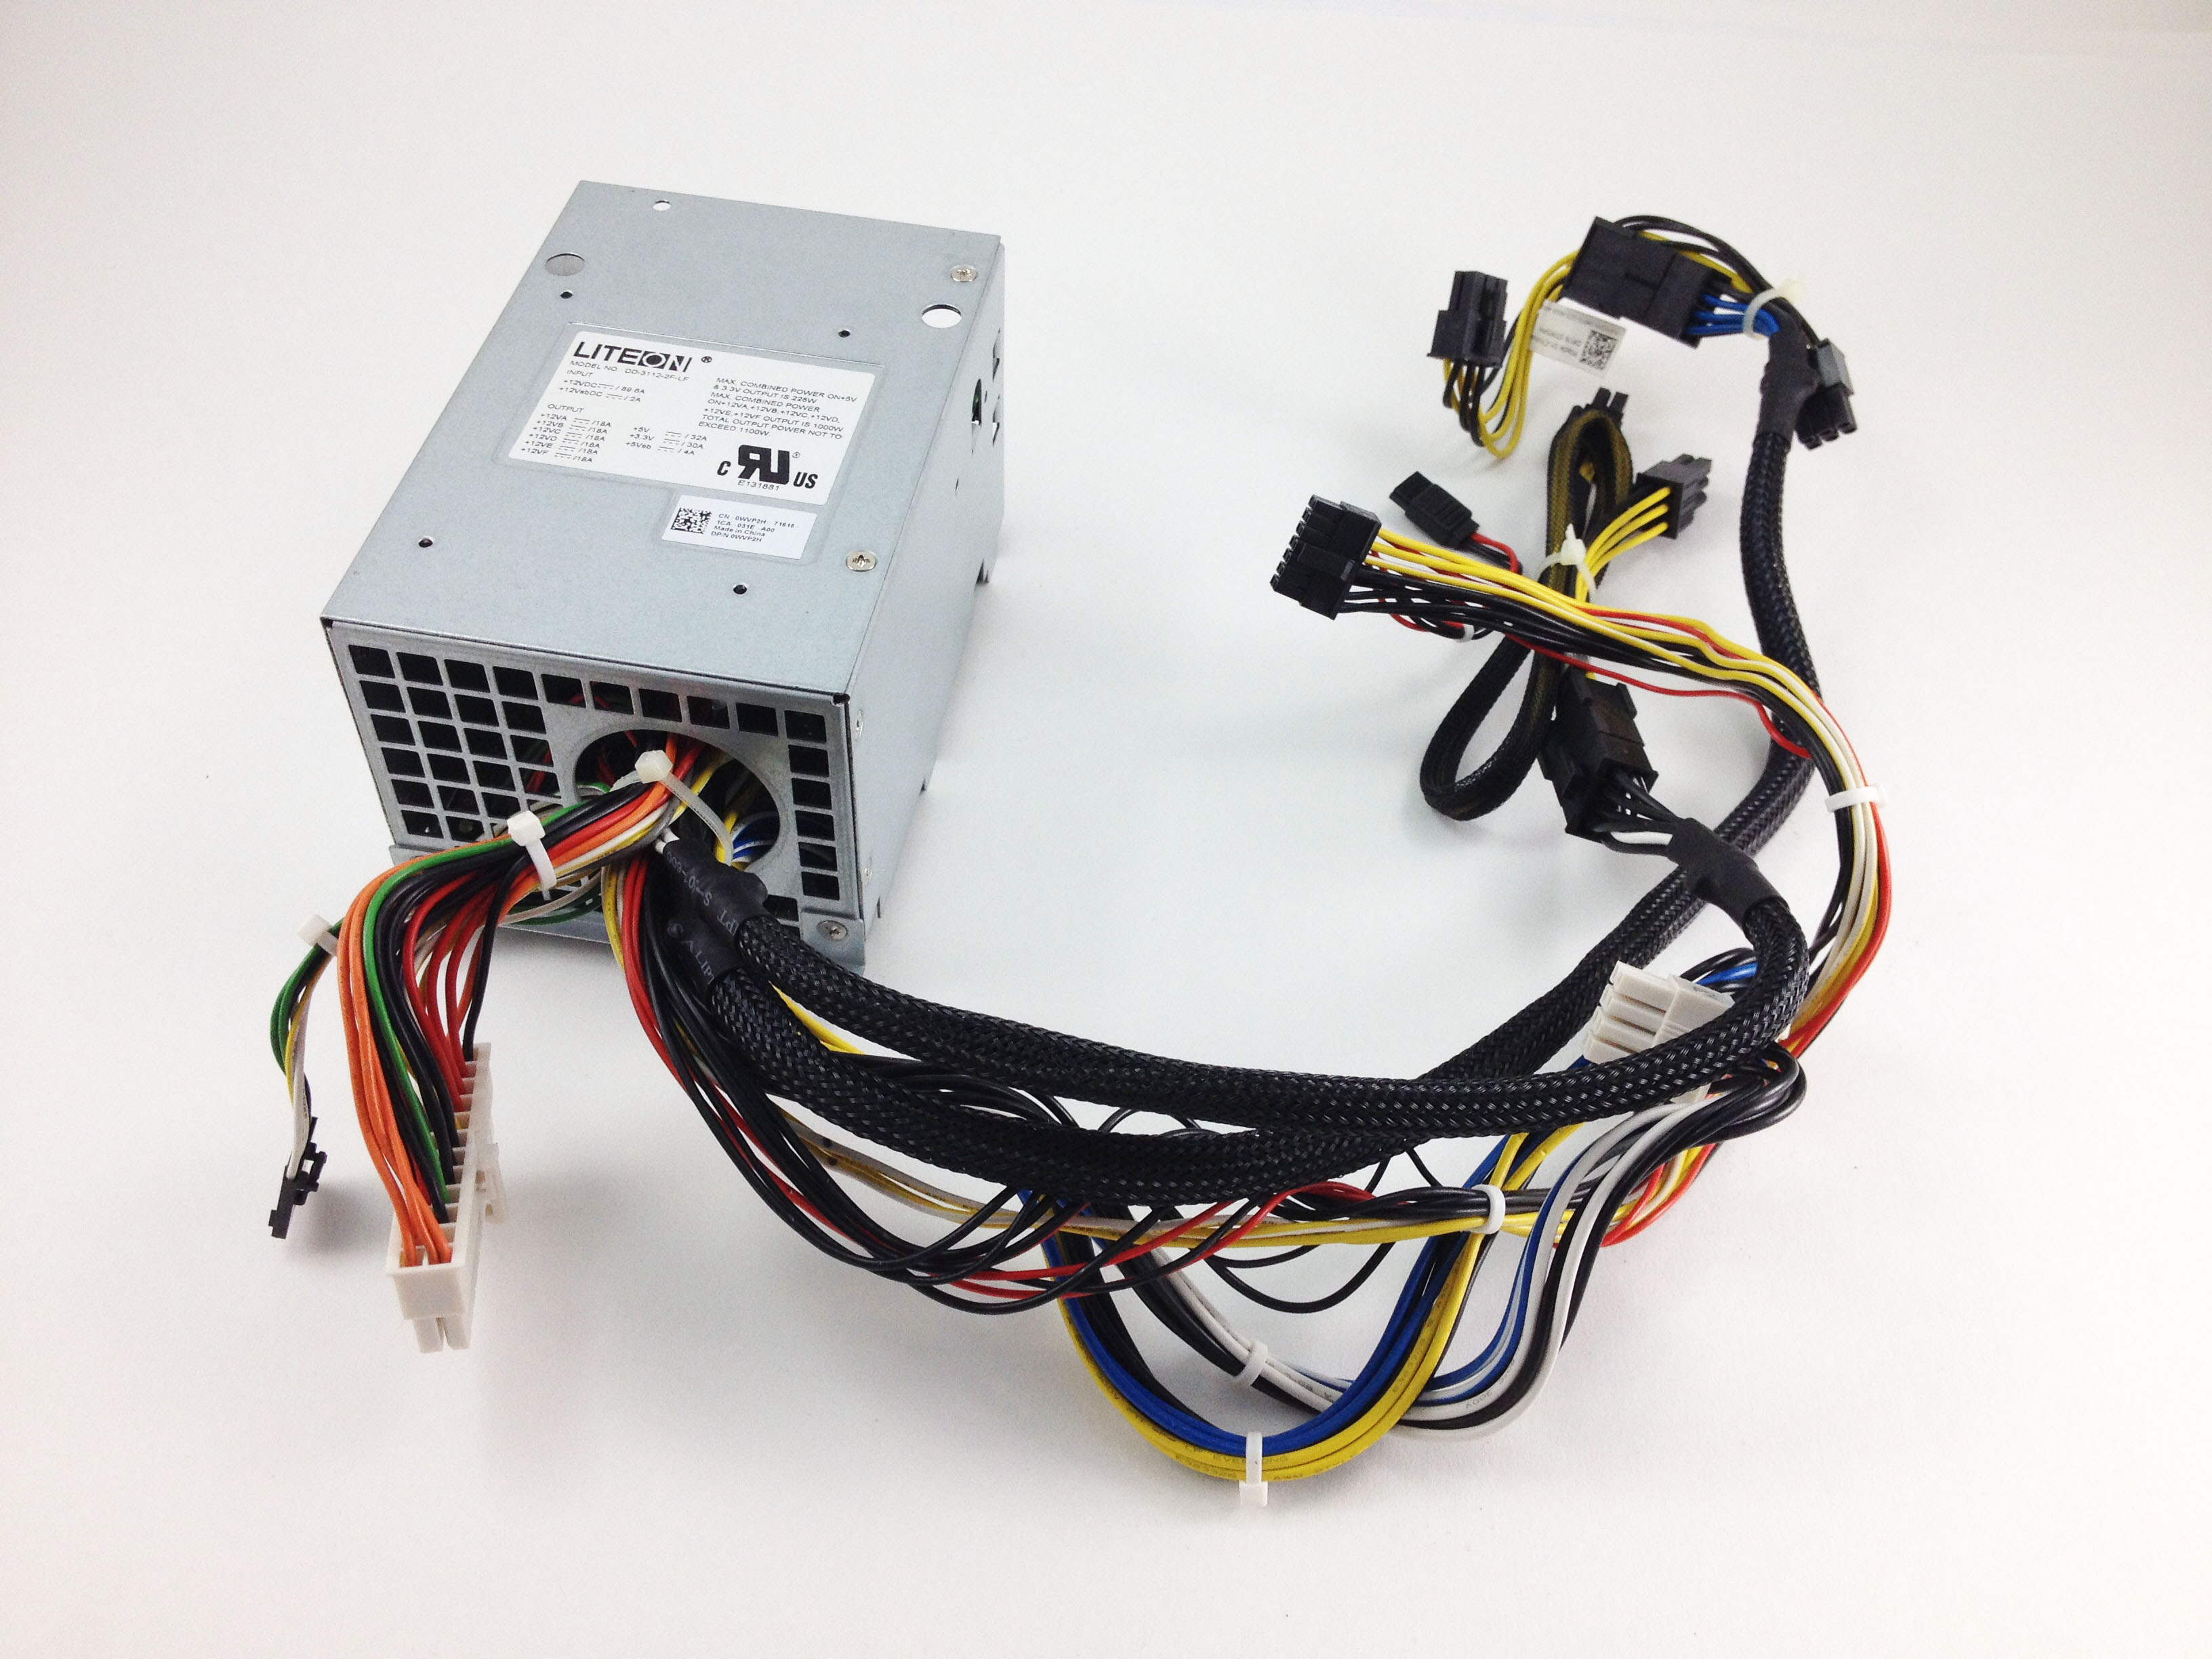 Dell Precision R5500 WorkStation Power Distribution Board w/ Cables (WVP2H)